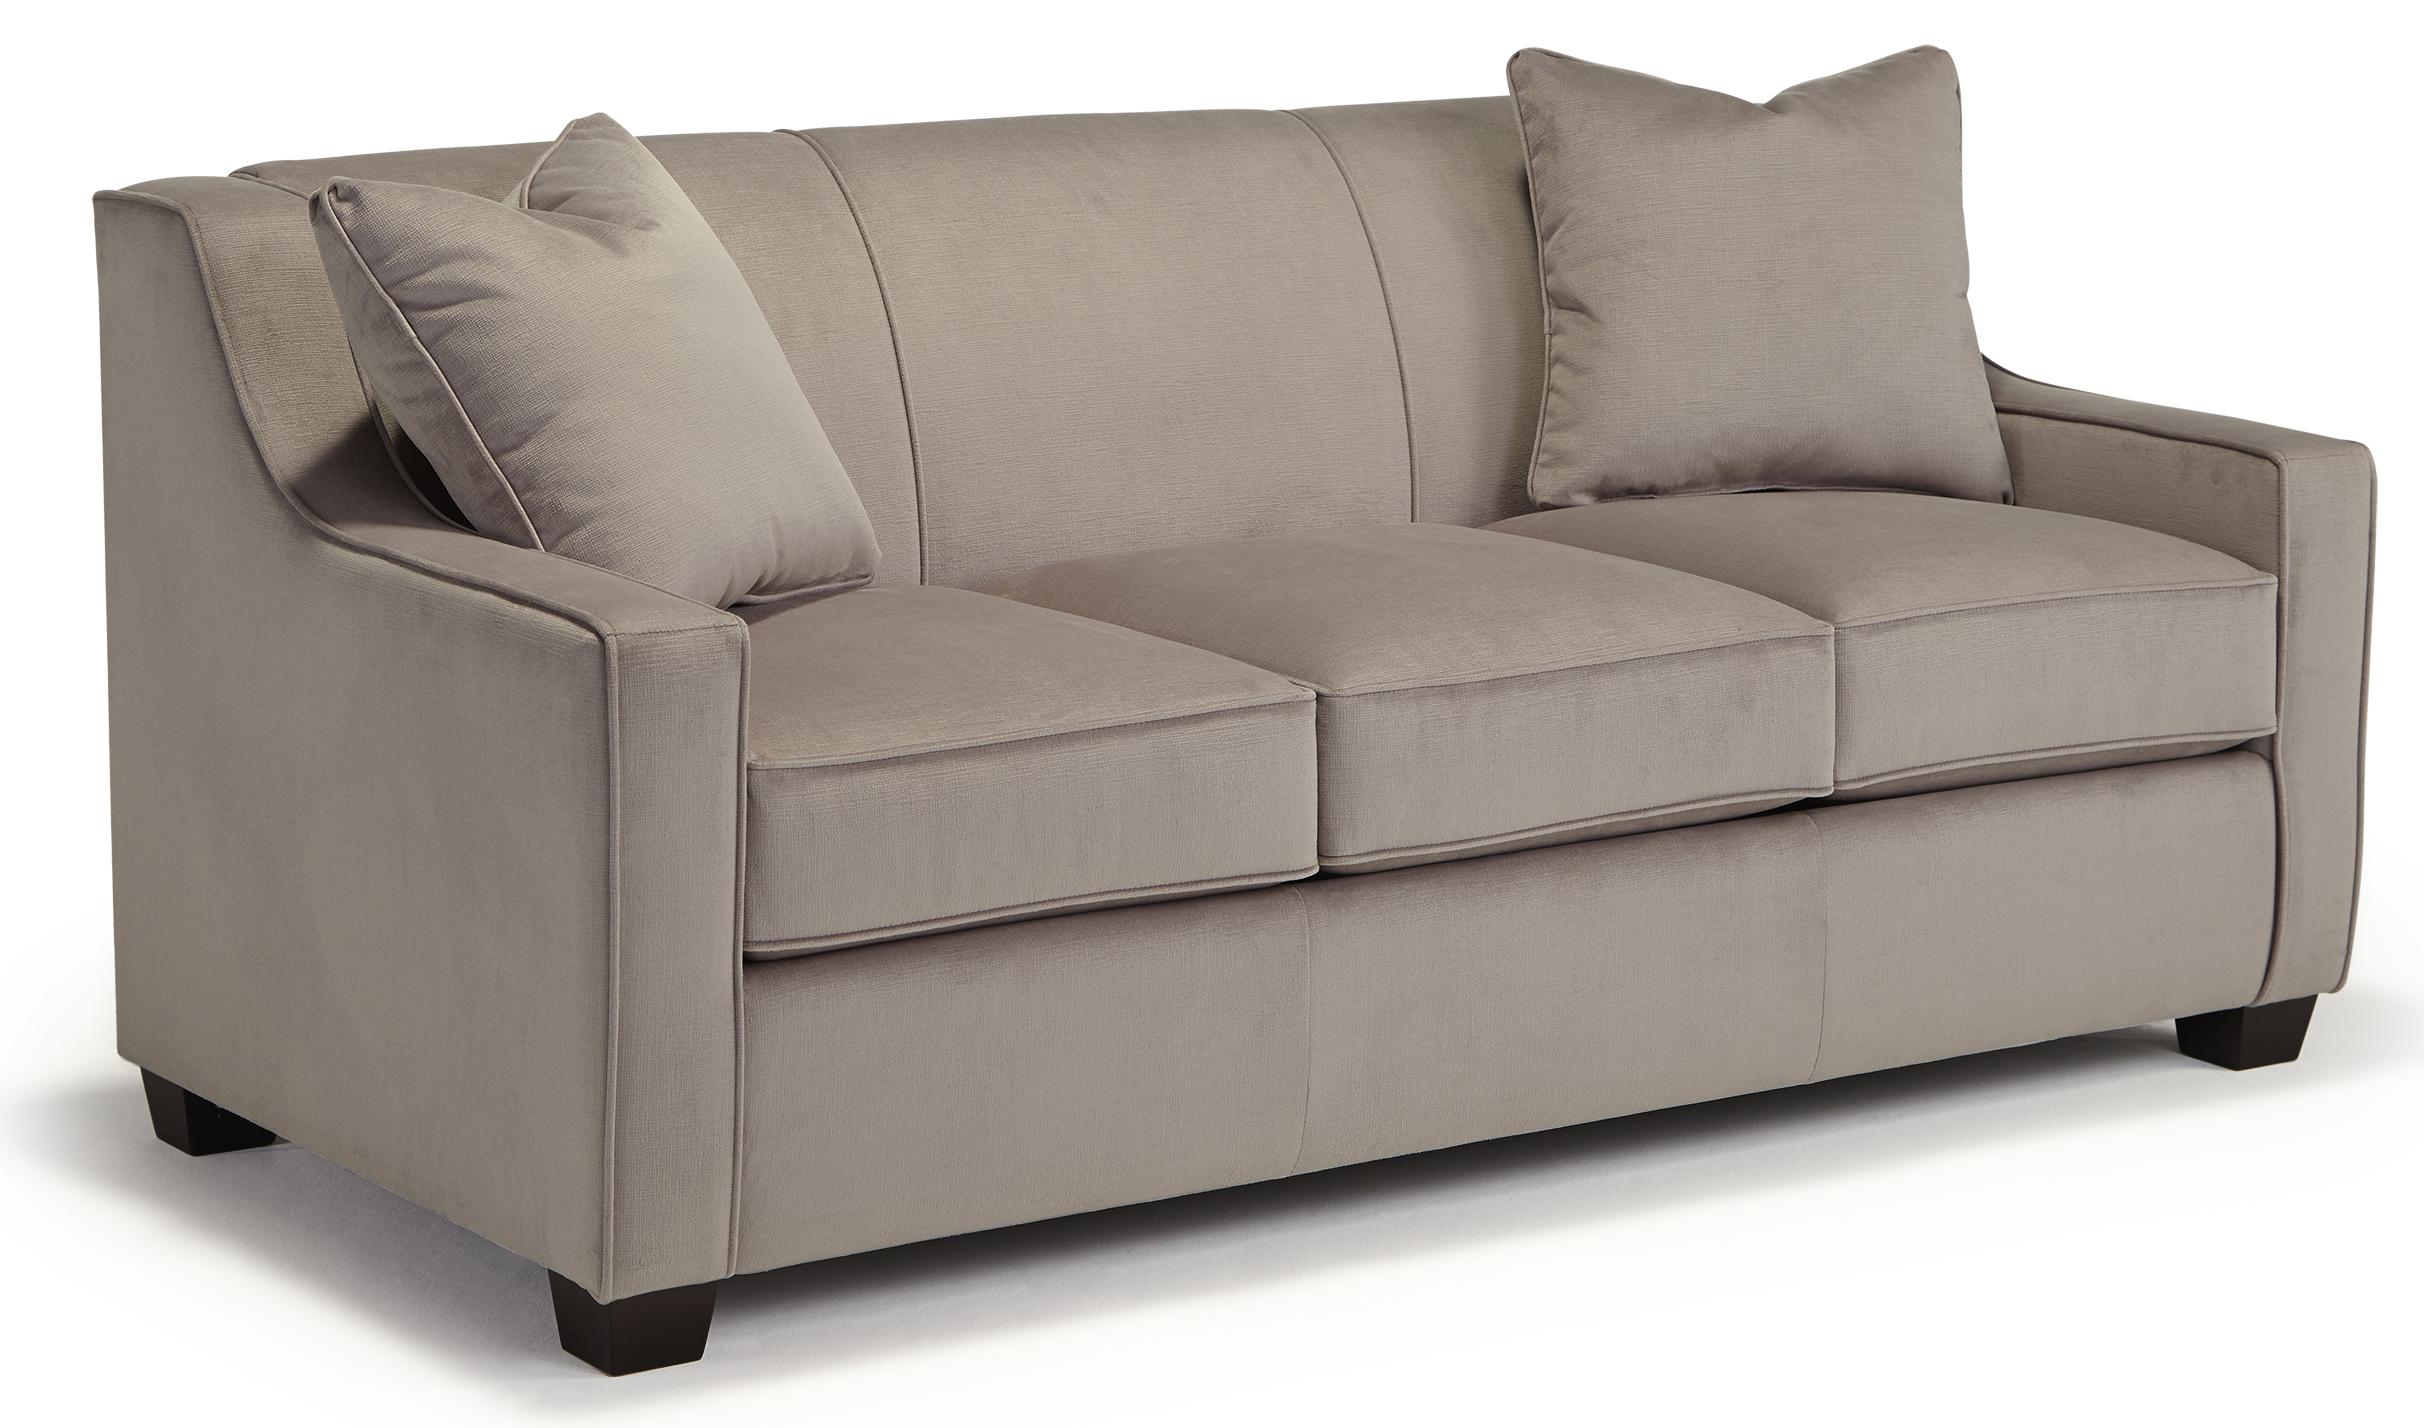 Marinette Full Size Sleeper Sofa w/ MemFoam Mattress by Best Home Furnishings at Mueller Furniture